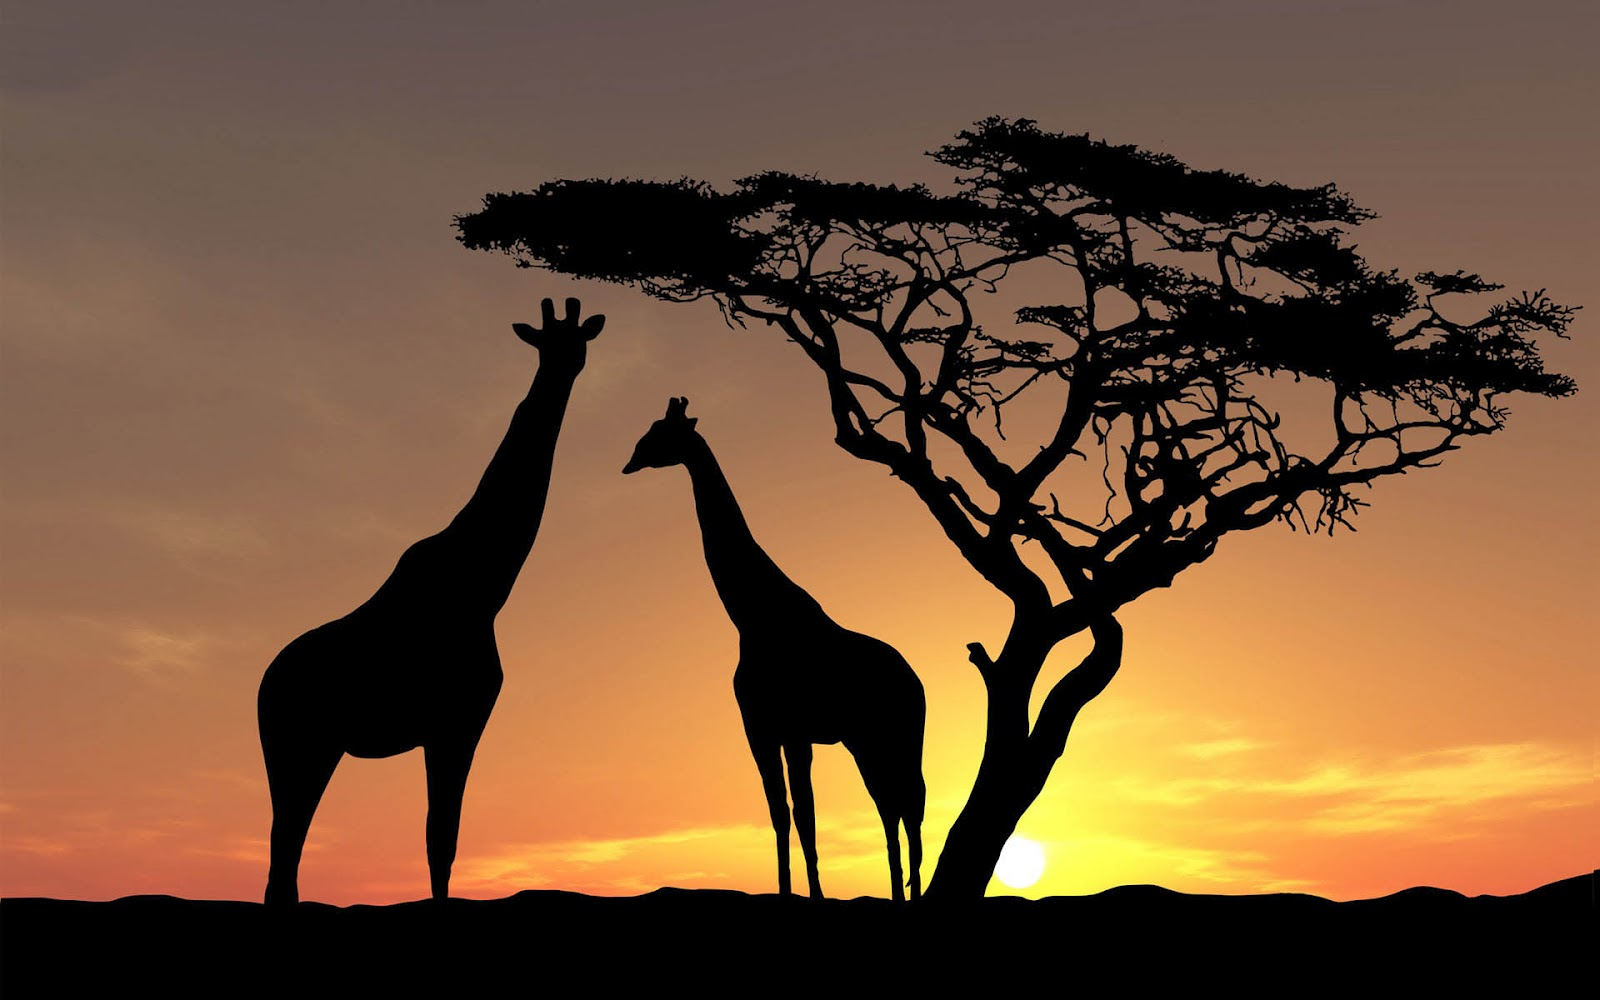 Giraffe HD Wallpapers  Backgrounds  Wallpaper  1600x1000